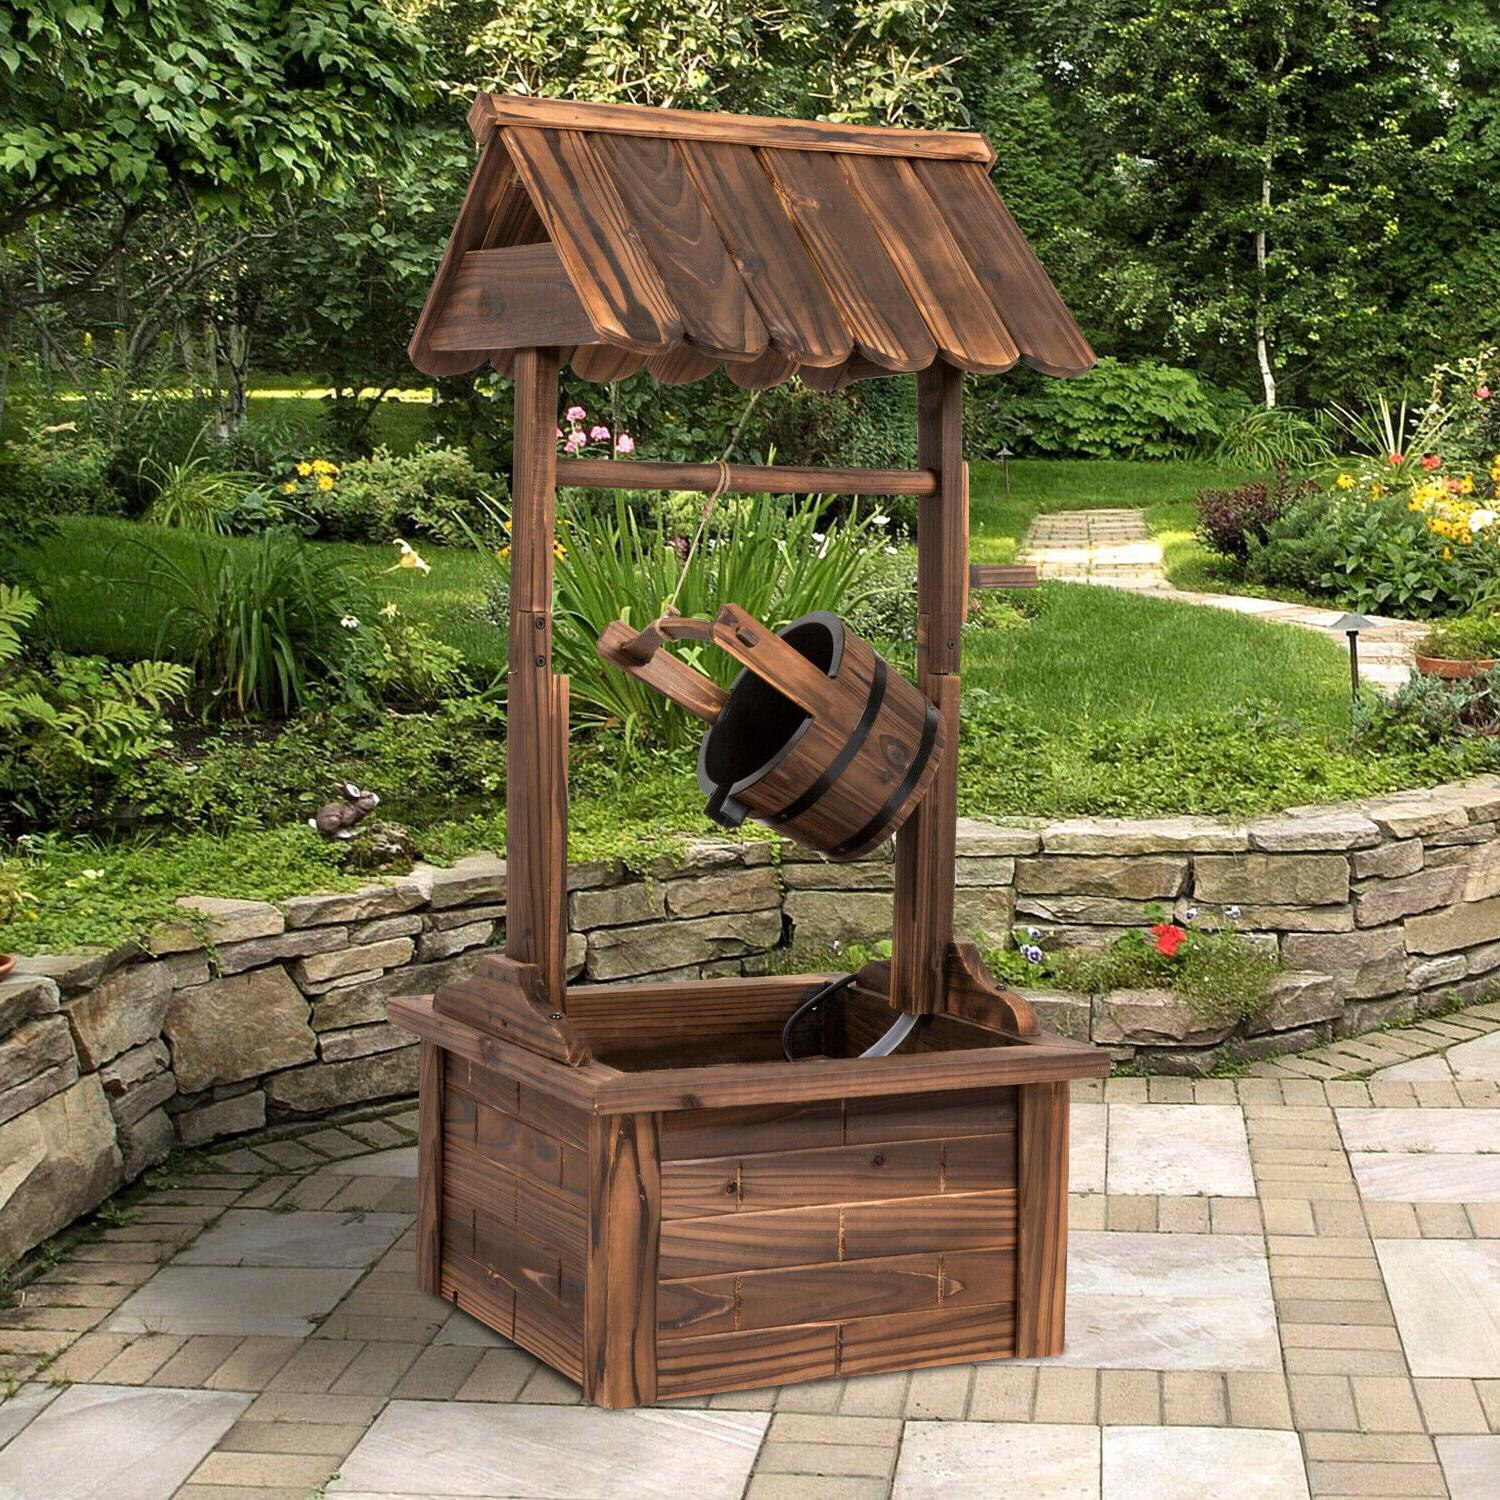 44-Inch Garden Rustic Wishing Well Fountain with